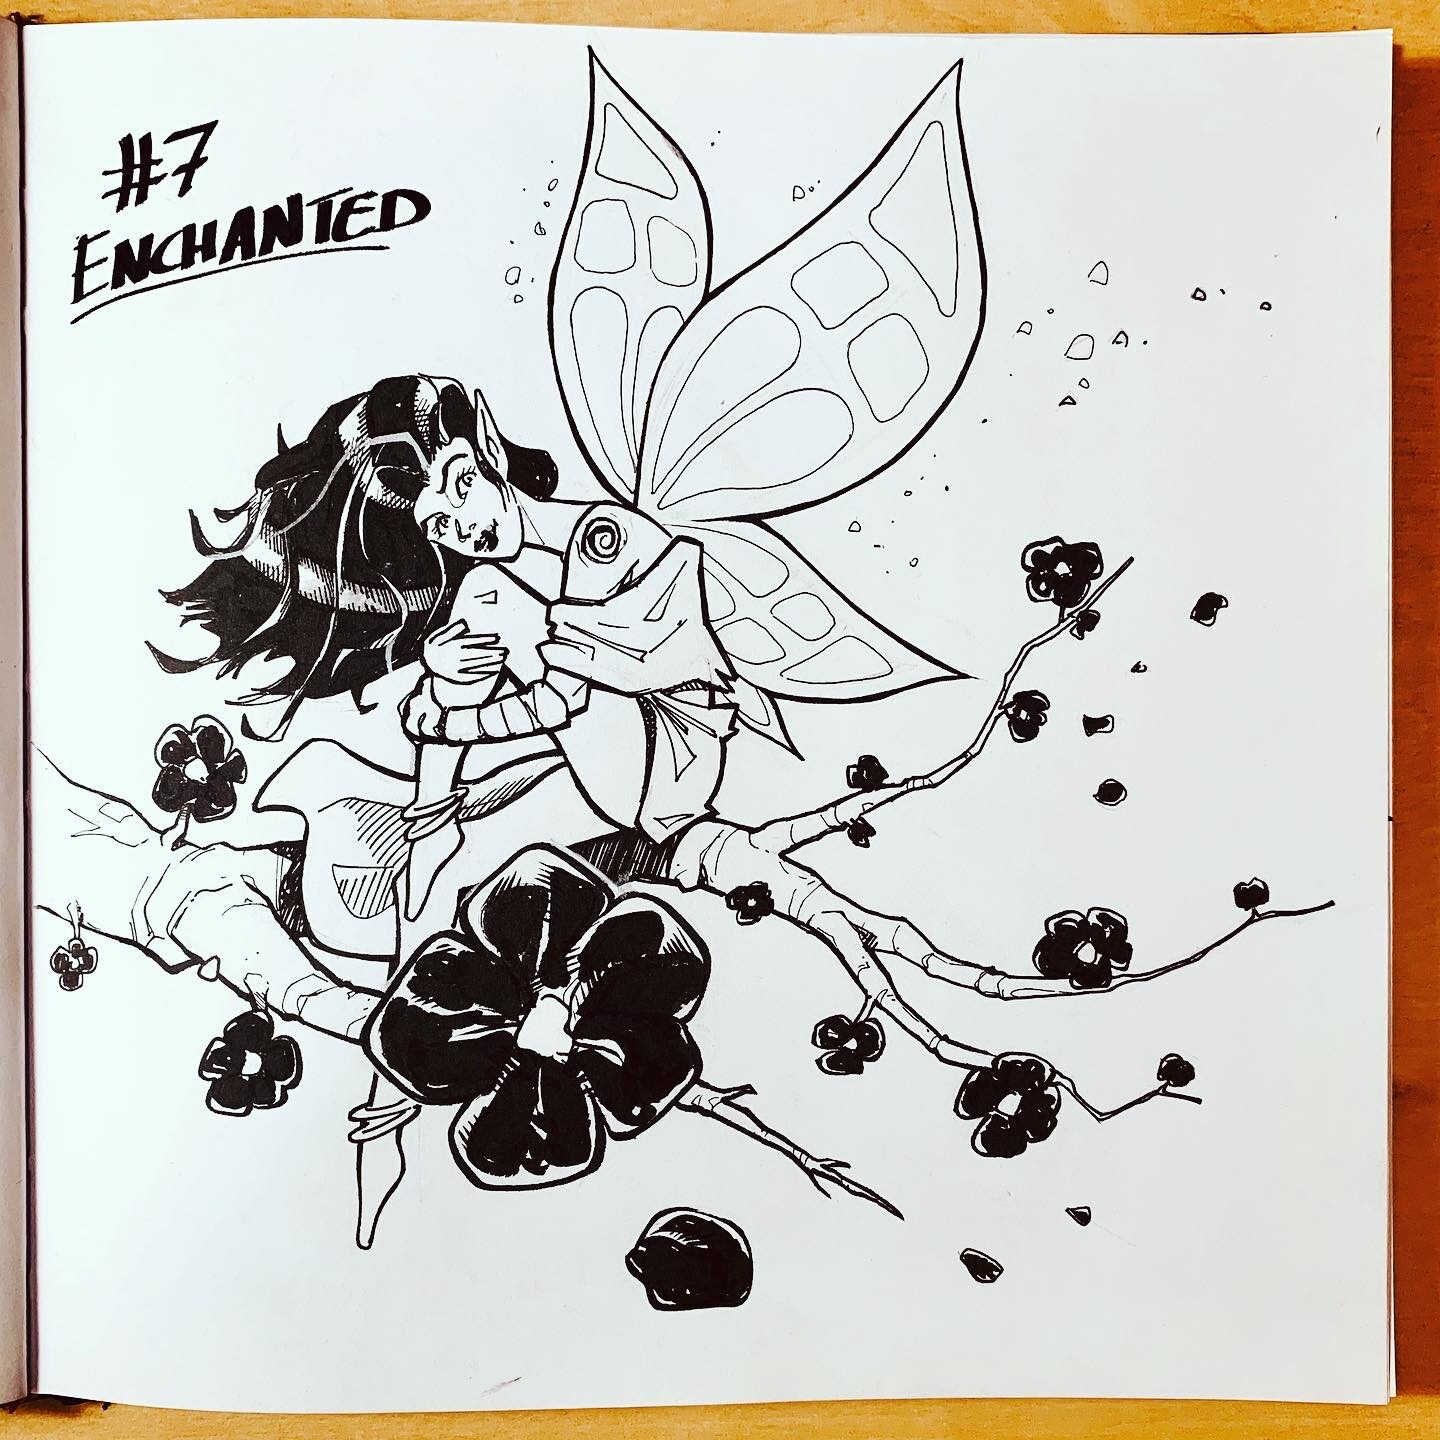 Inktober 2019: #7. Enchanted